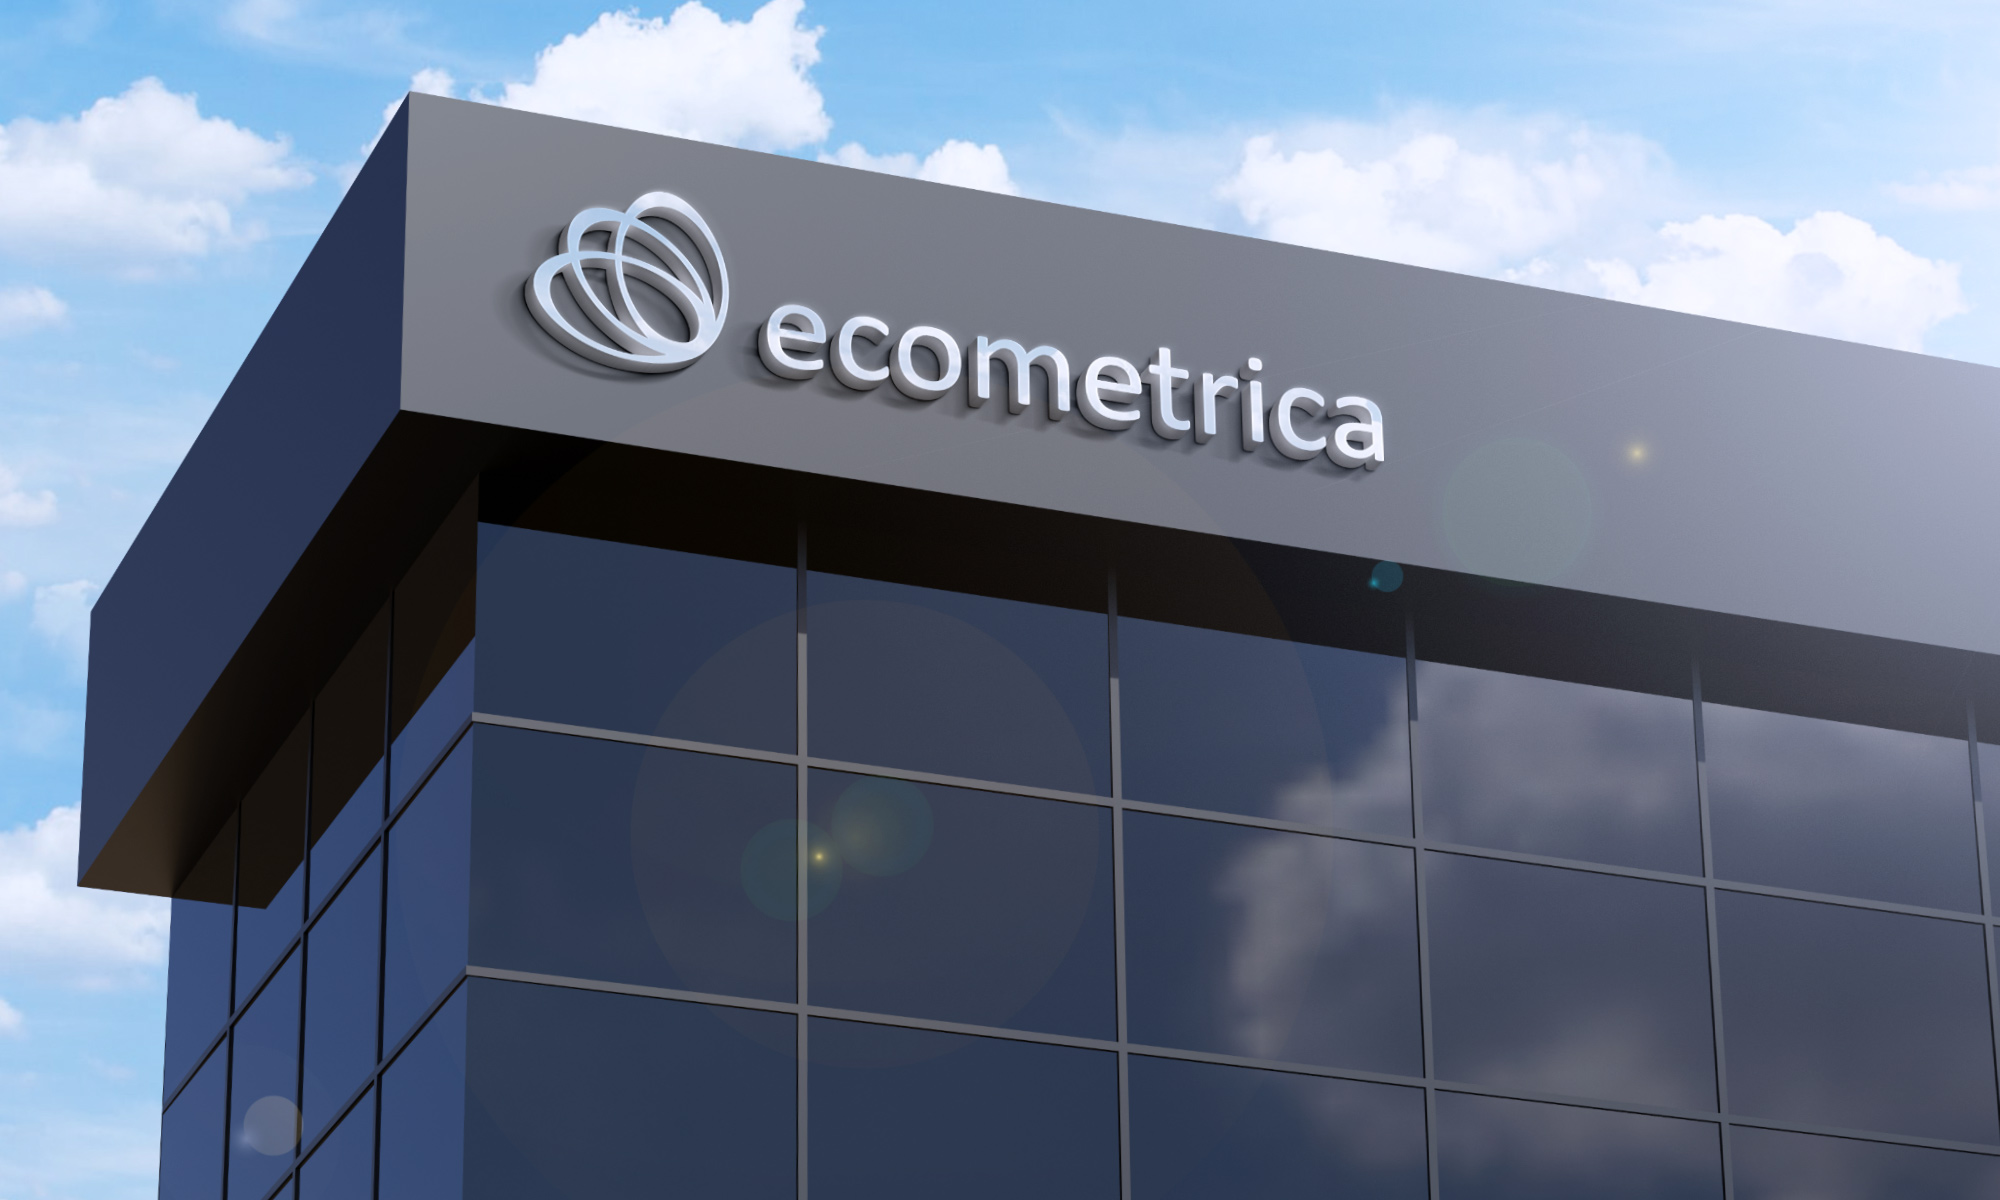 Ecometrica offices